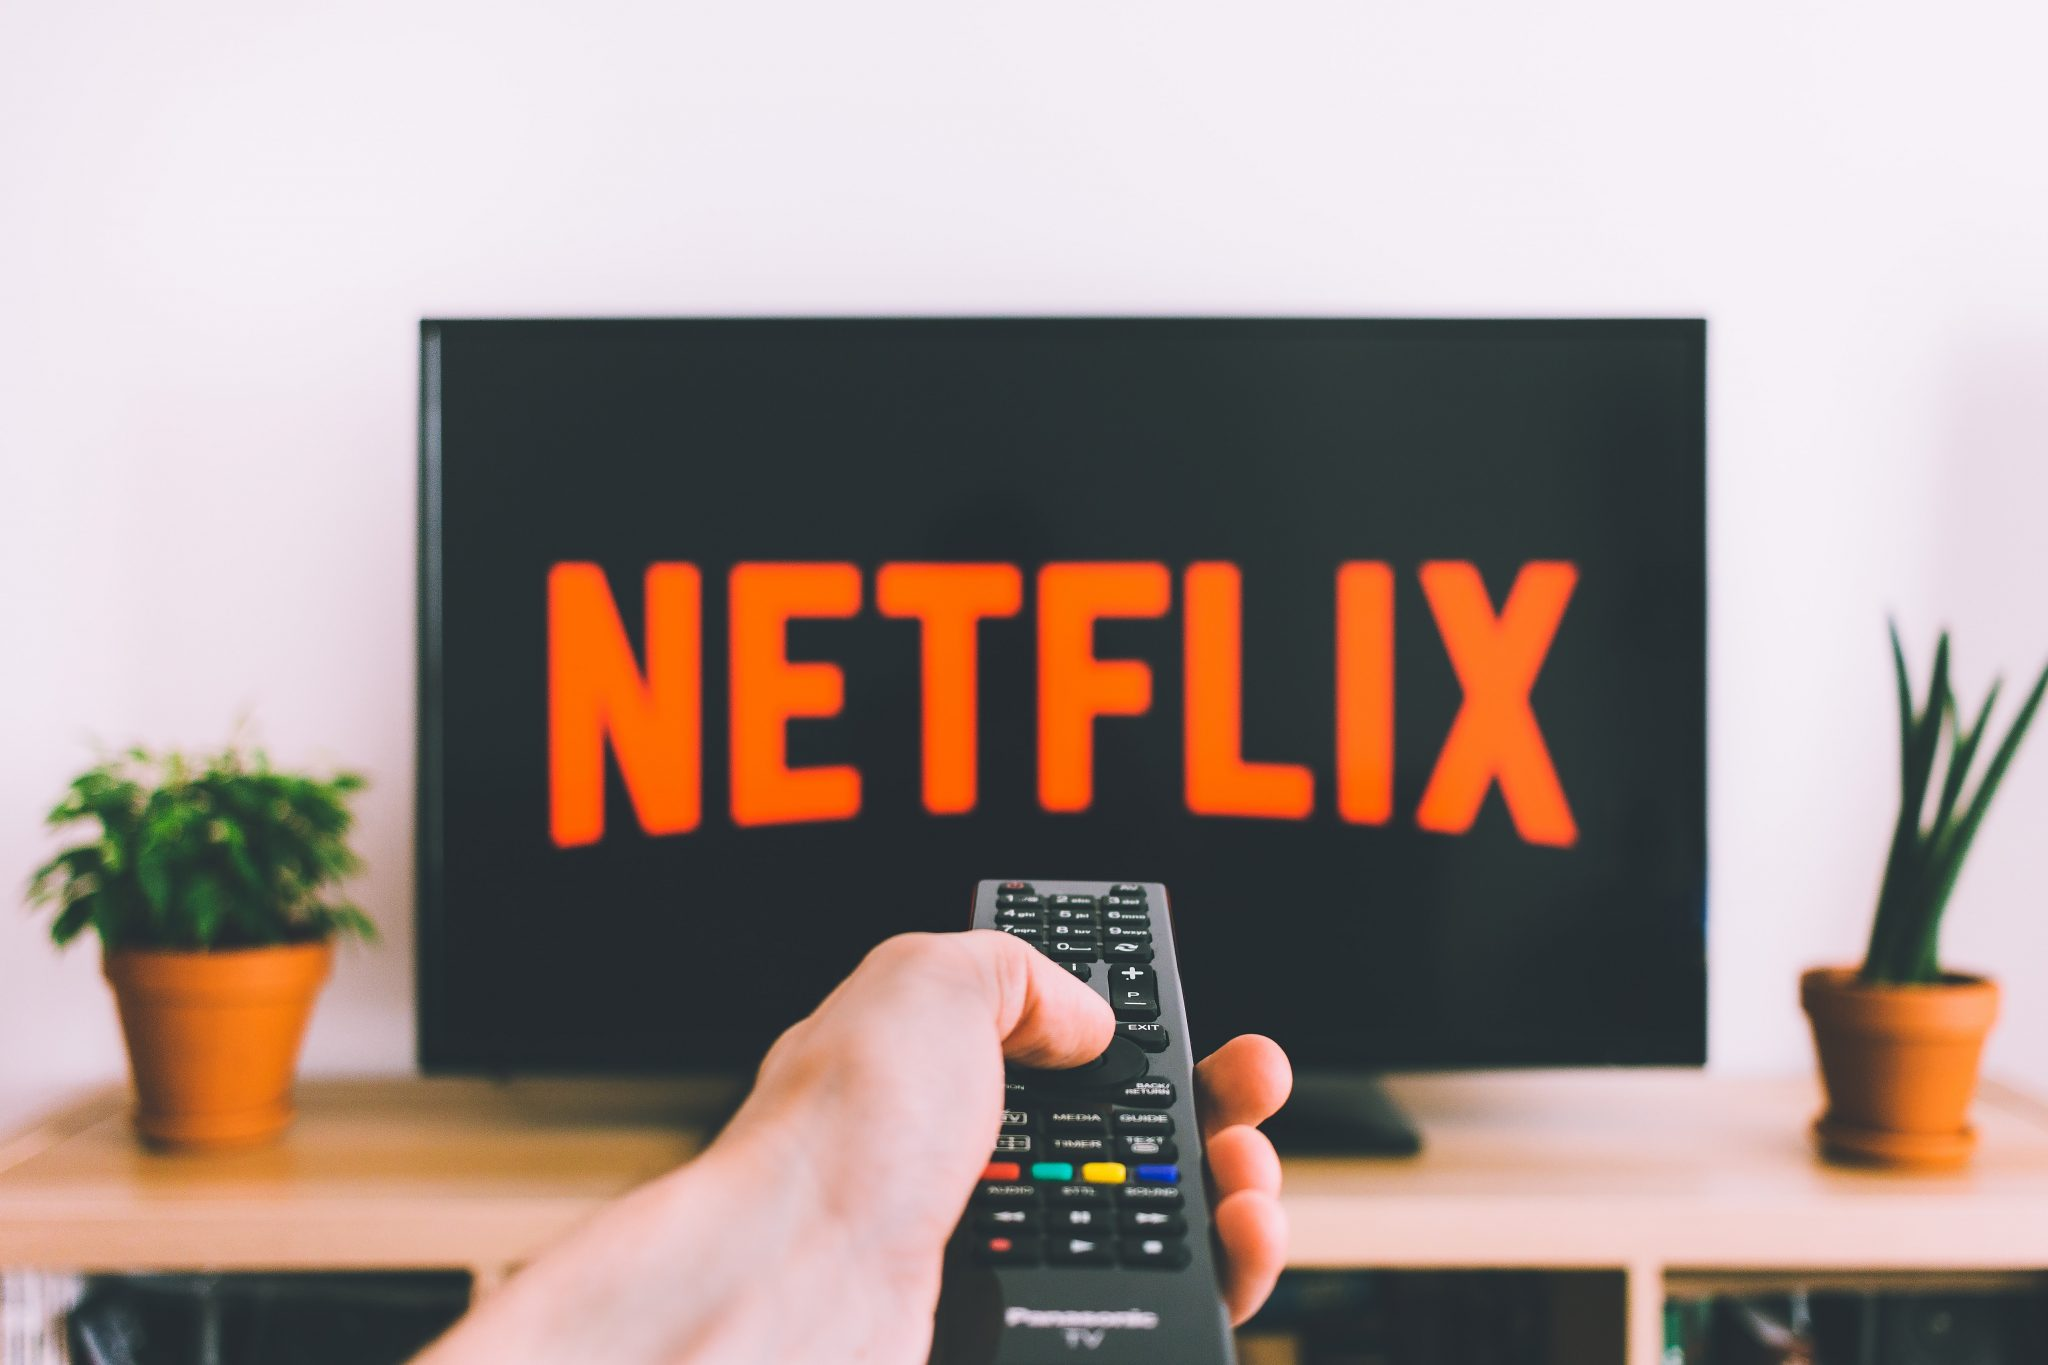 Netflix on a large TV with man pointing controller